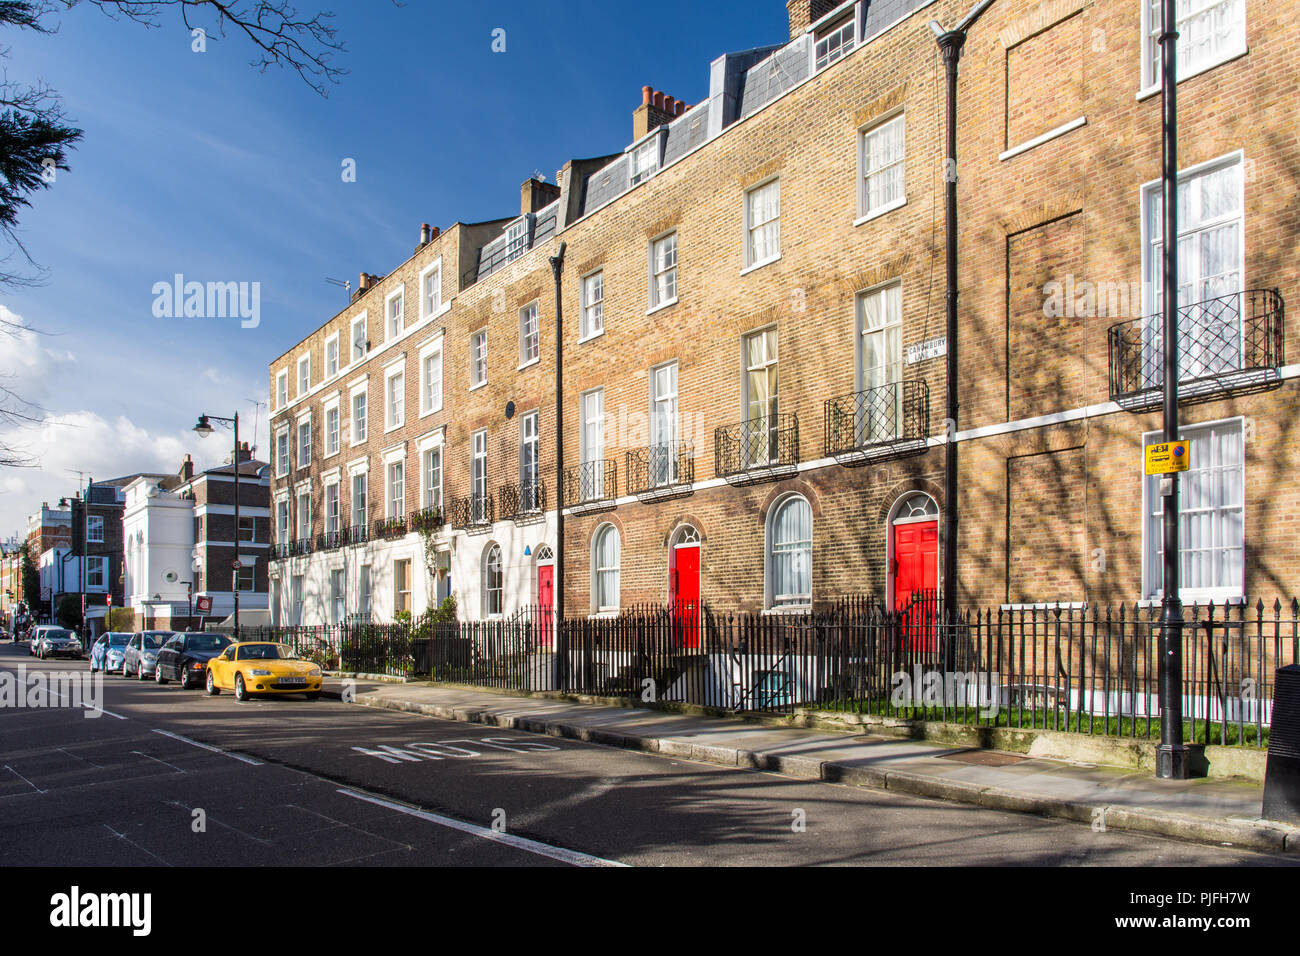 London, England, UK - February 12, 2018: Terraces of traditional town houses line residential streets in the Canonbury neighbourhood of Islington, Nor - Stock Image